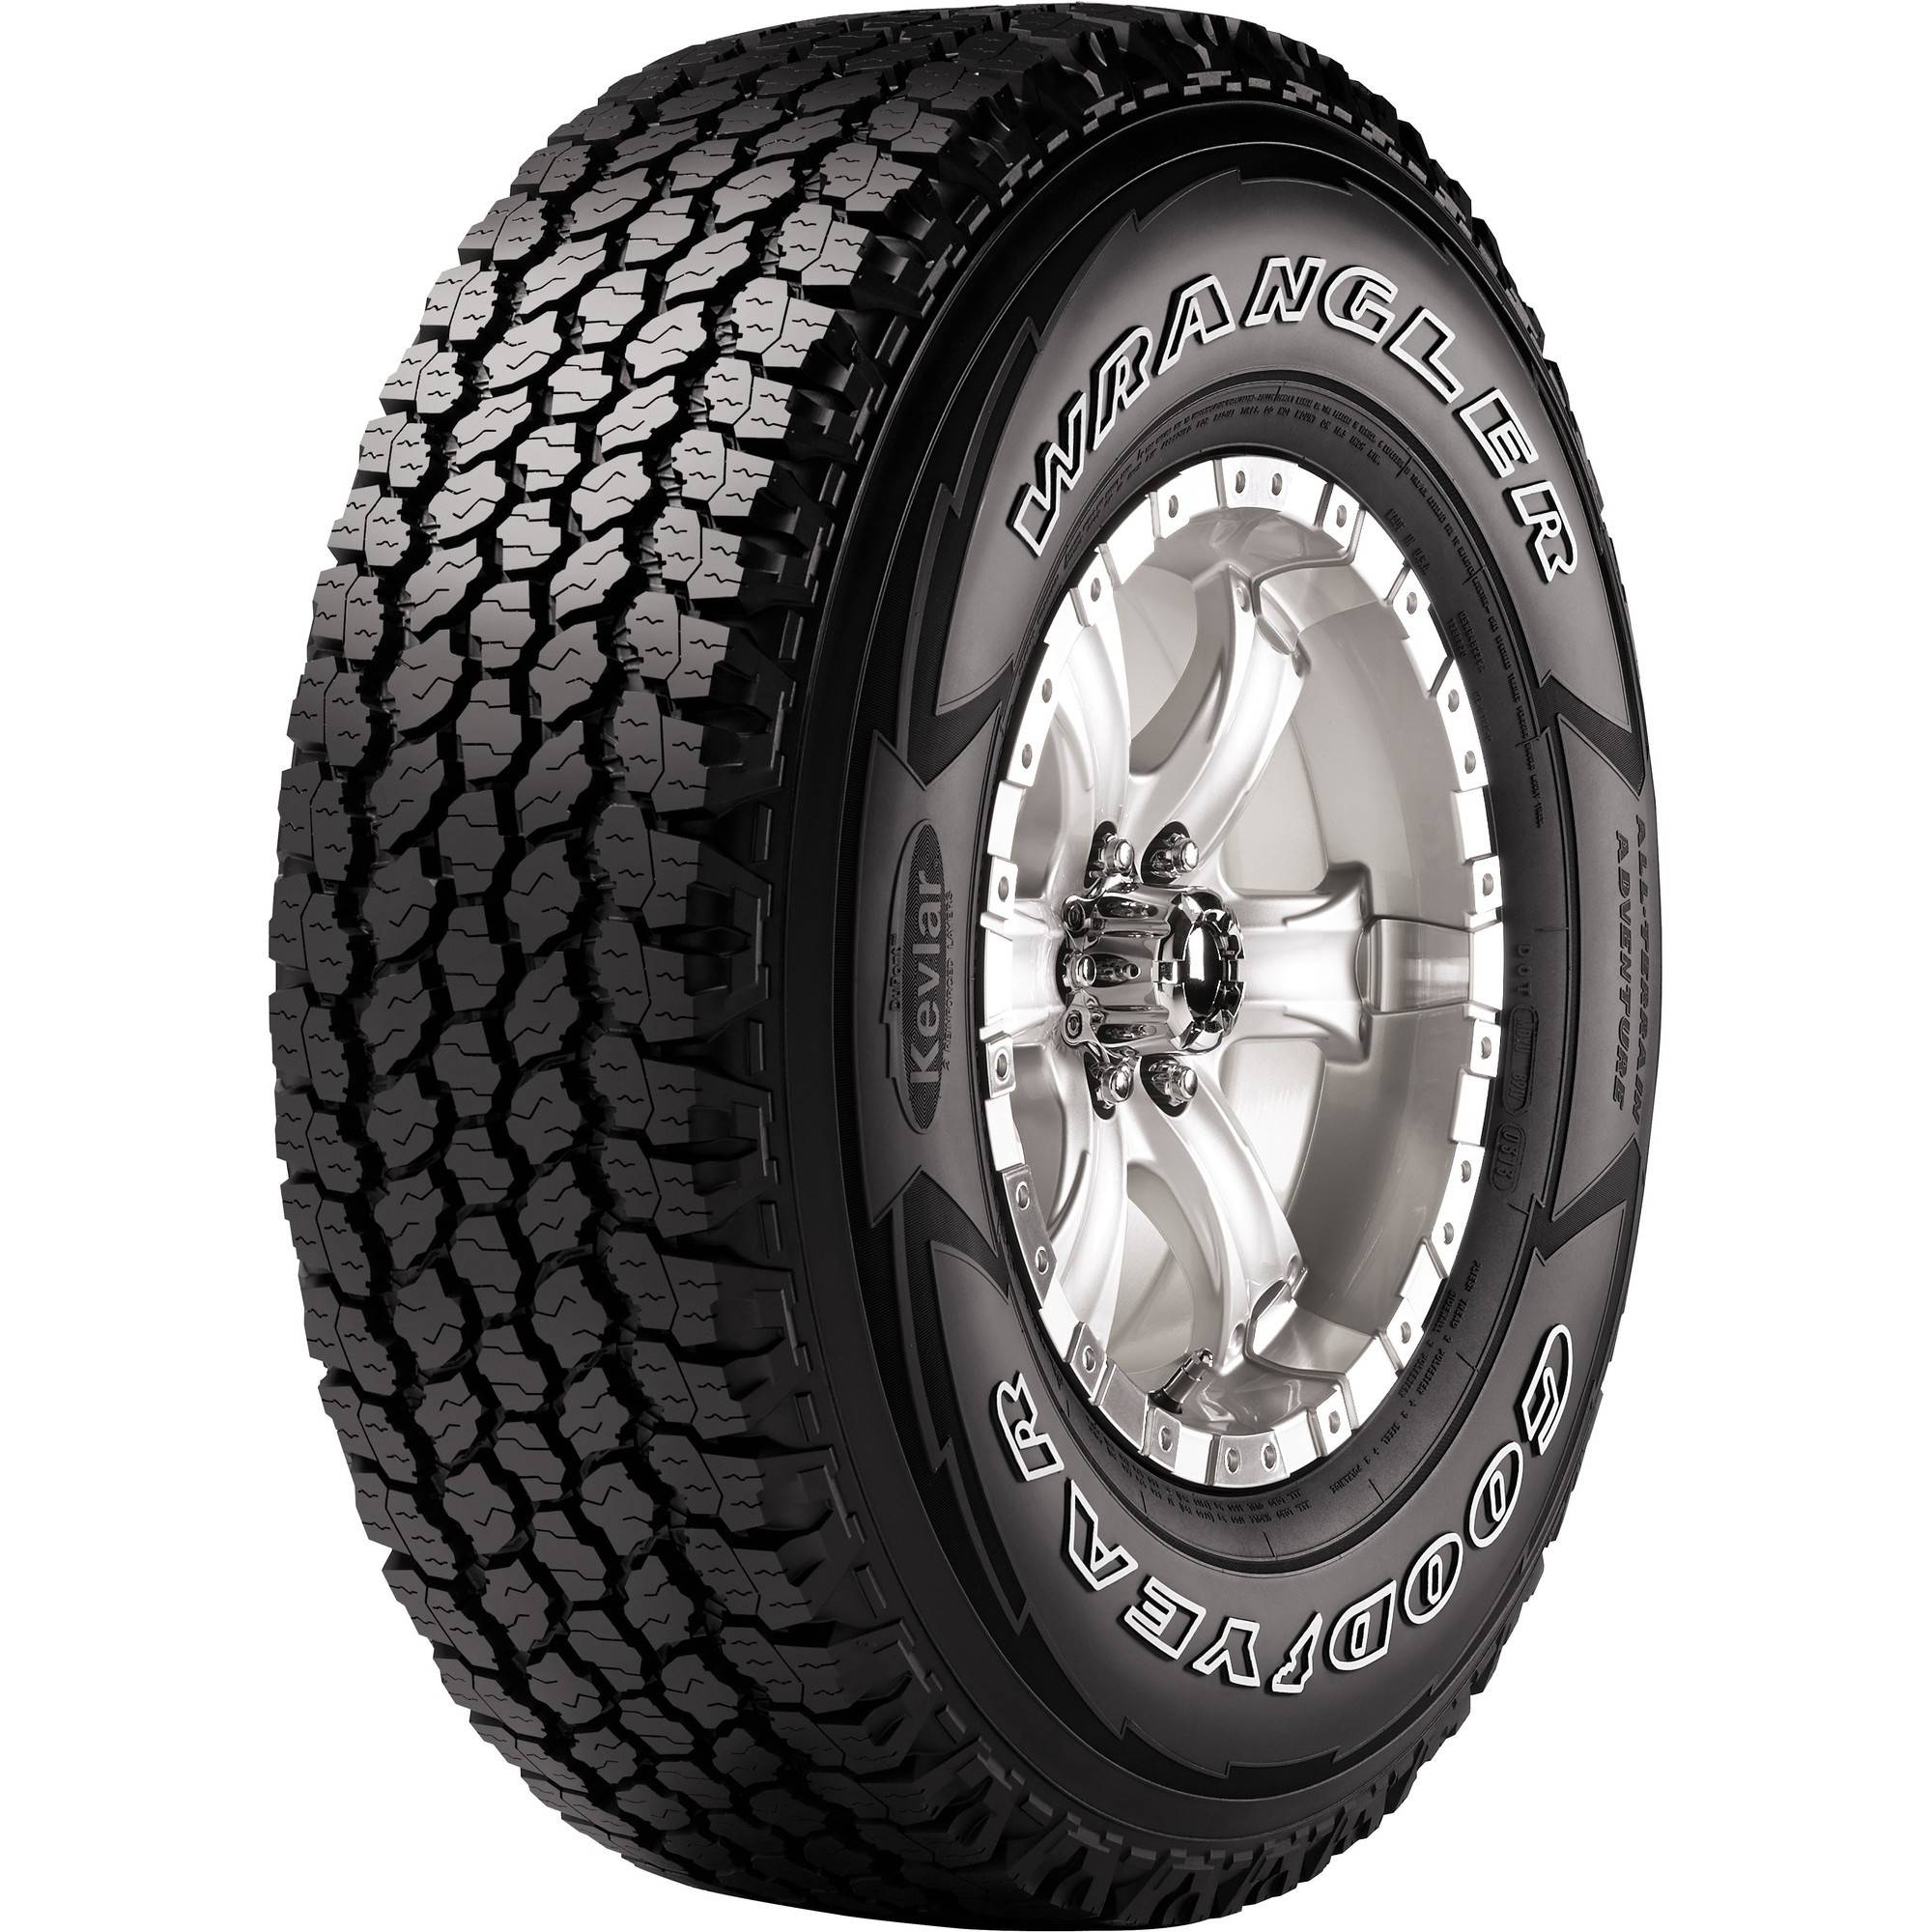 Goodyear Wrangler All-Terrain Adventure 245/70R17/SL Tire 110T